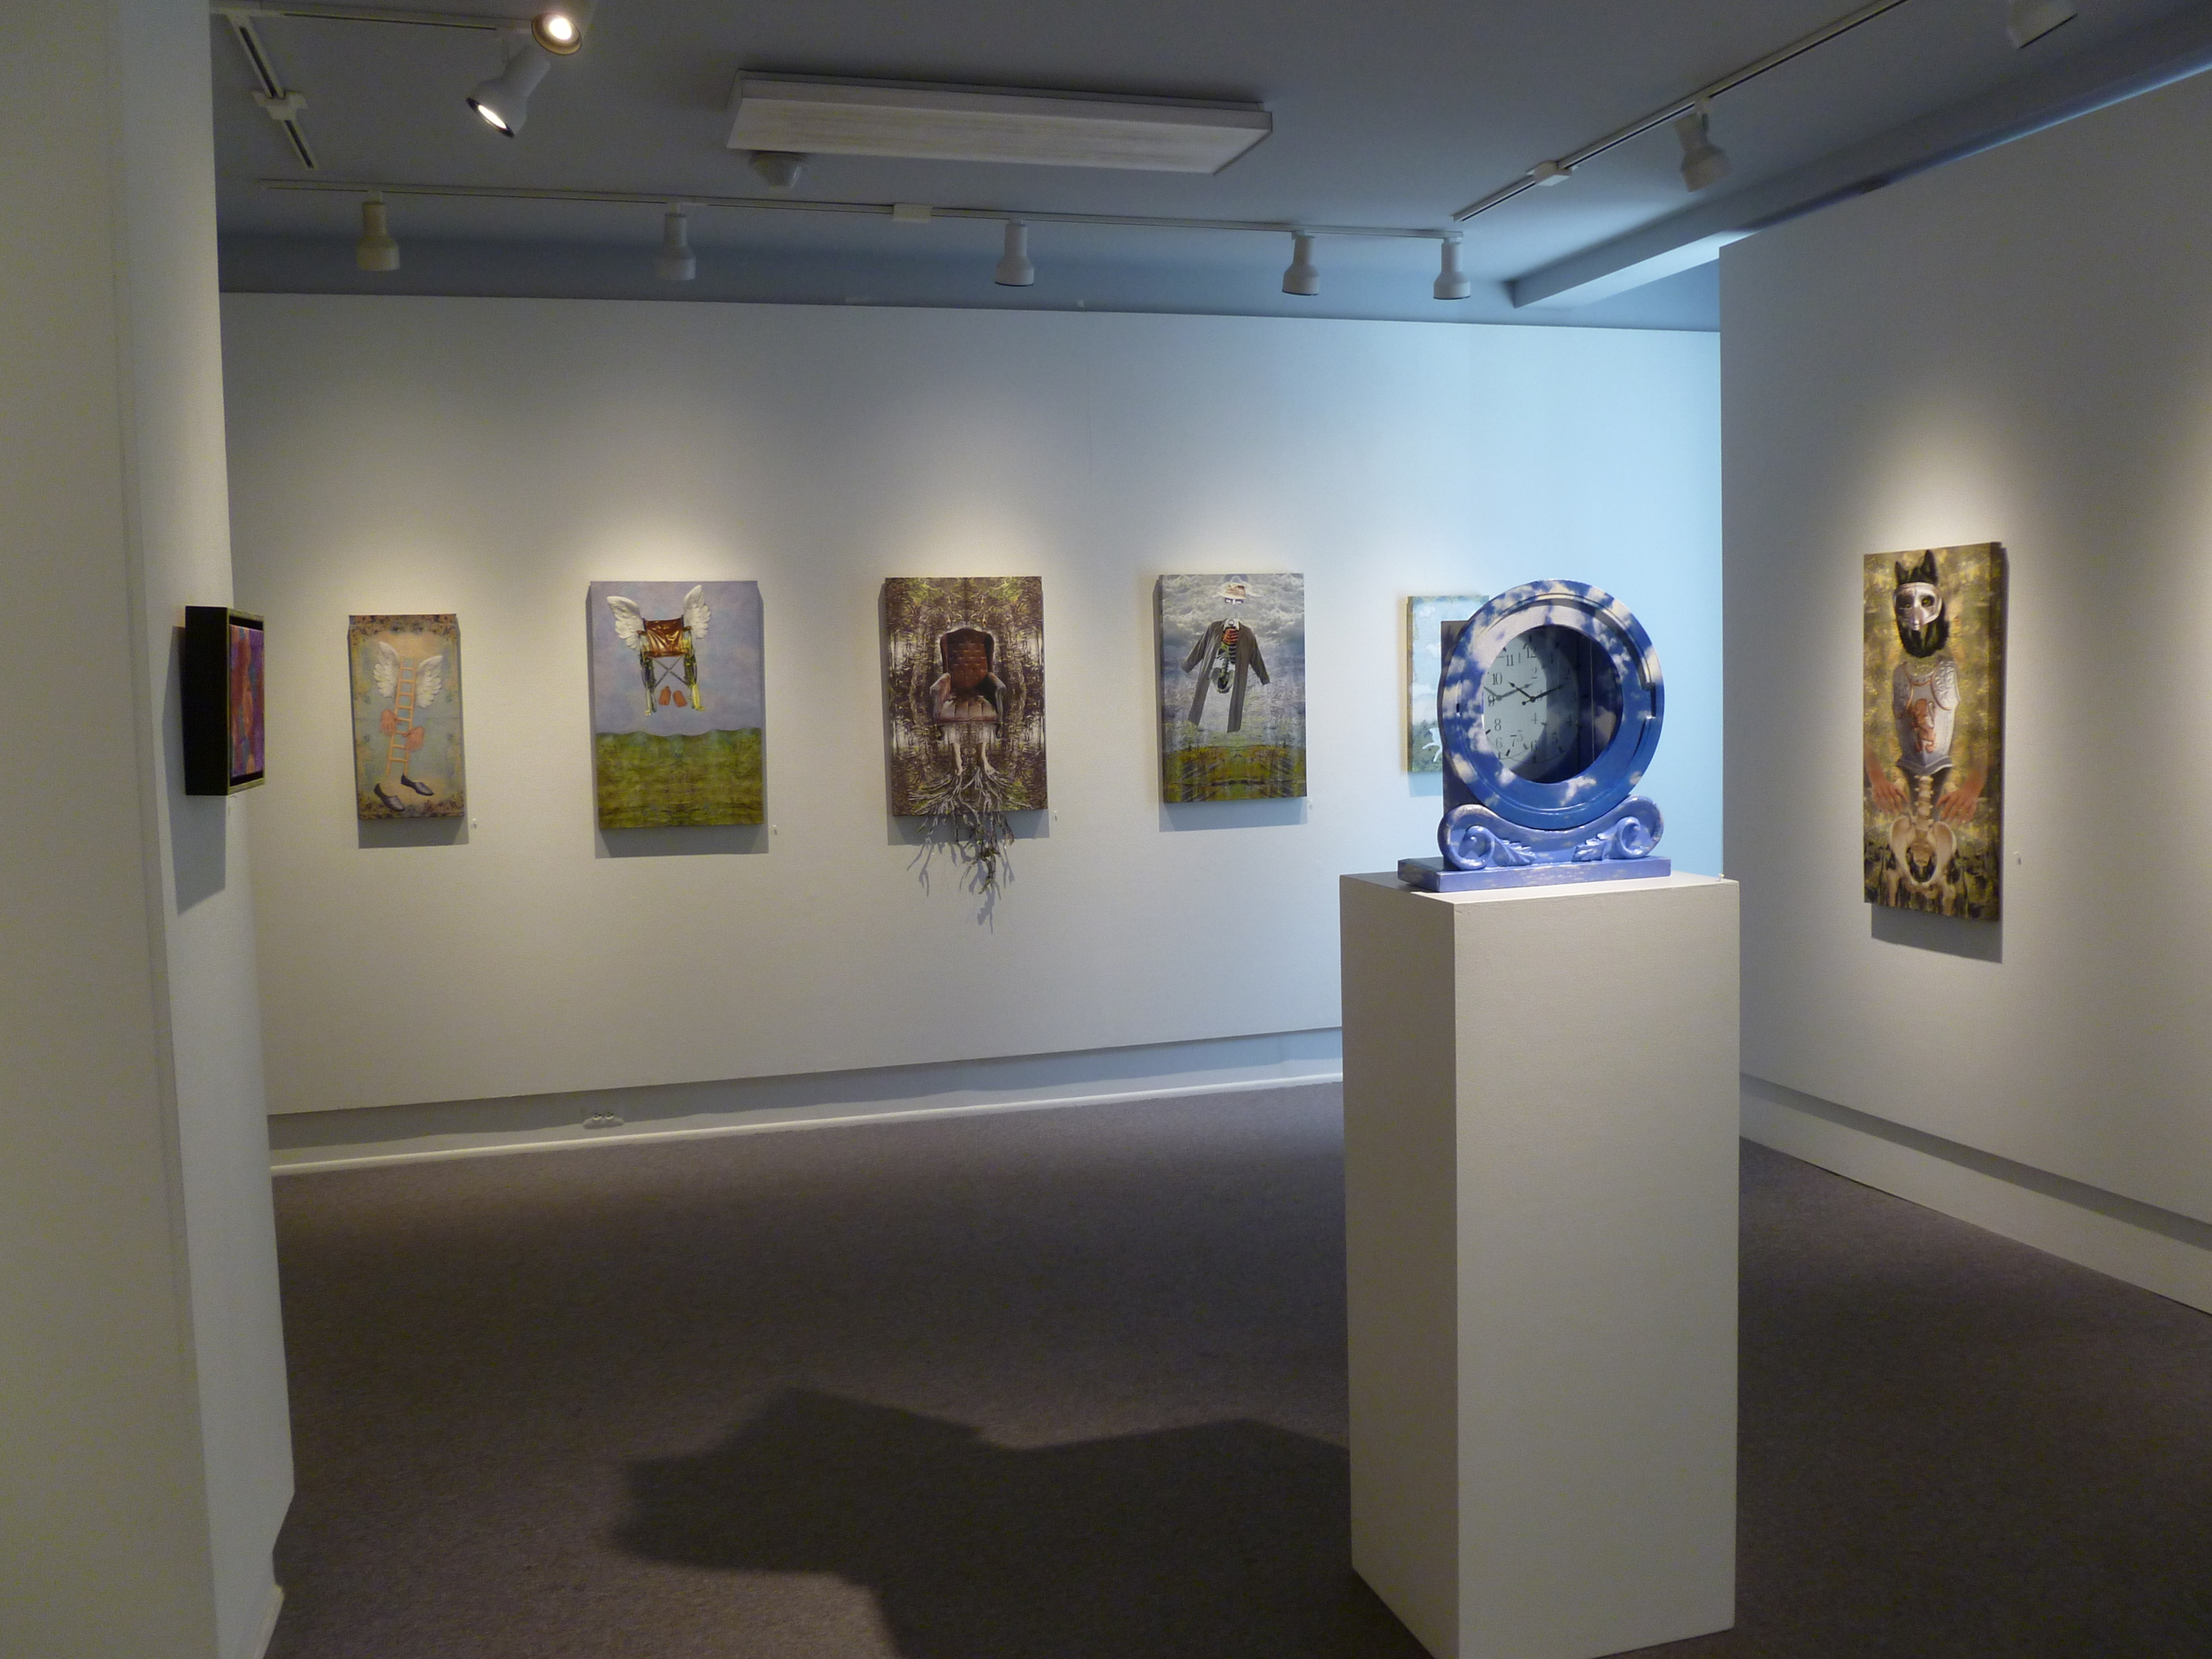 Image from solo show at Alliance Gallery, Narrowsburg, NY